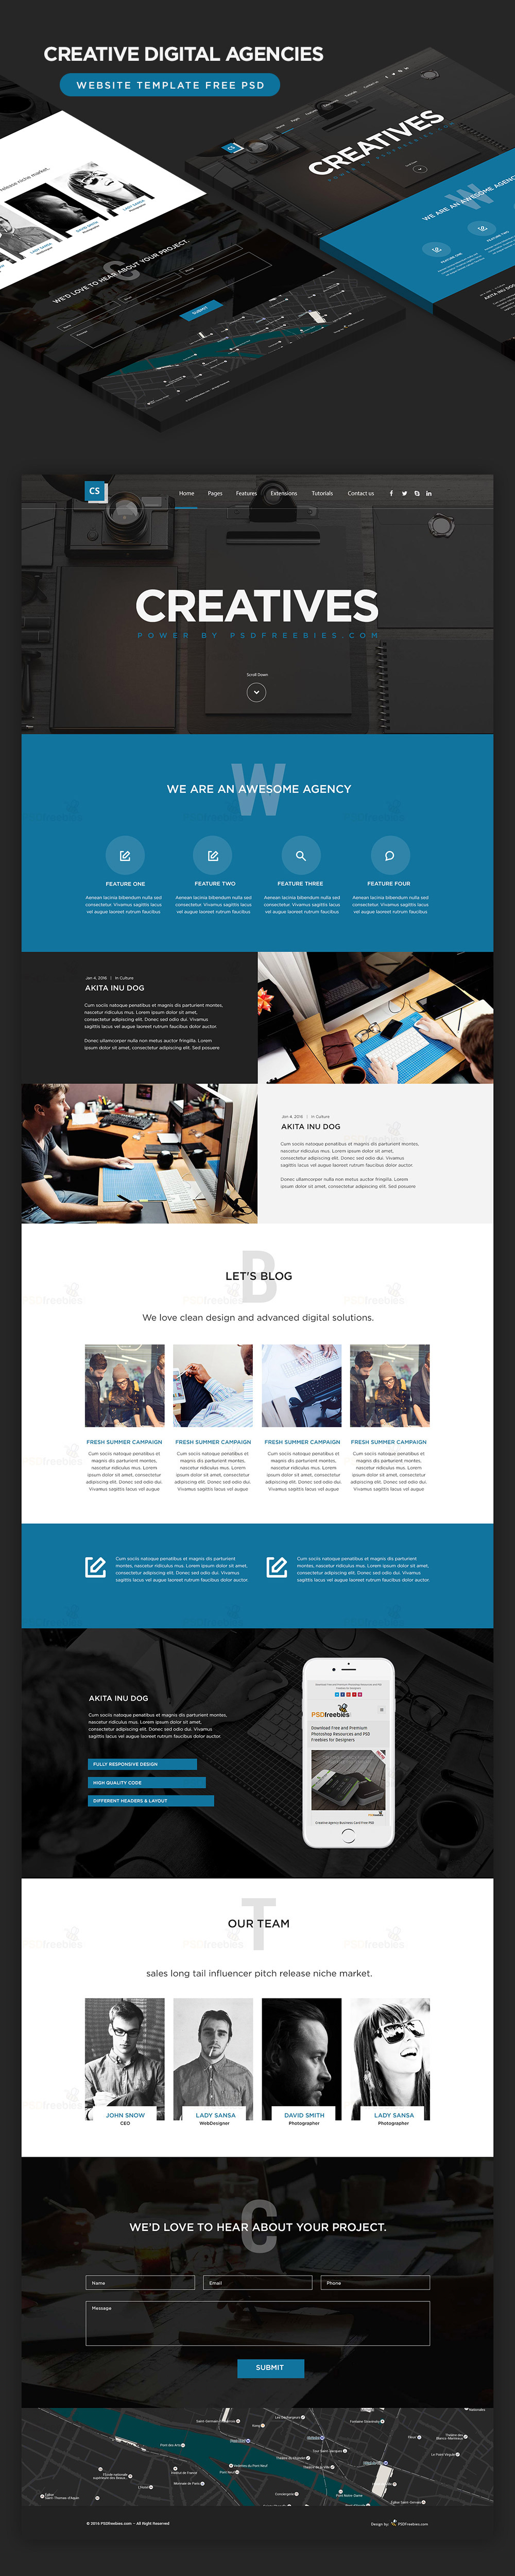 High quality 50 free corporate and business web templates psd creative digital agencies website template free psd download cheaphphosting